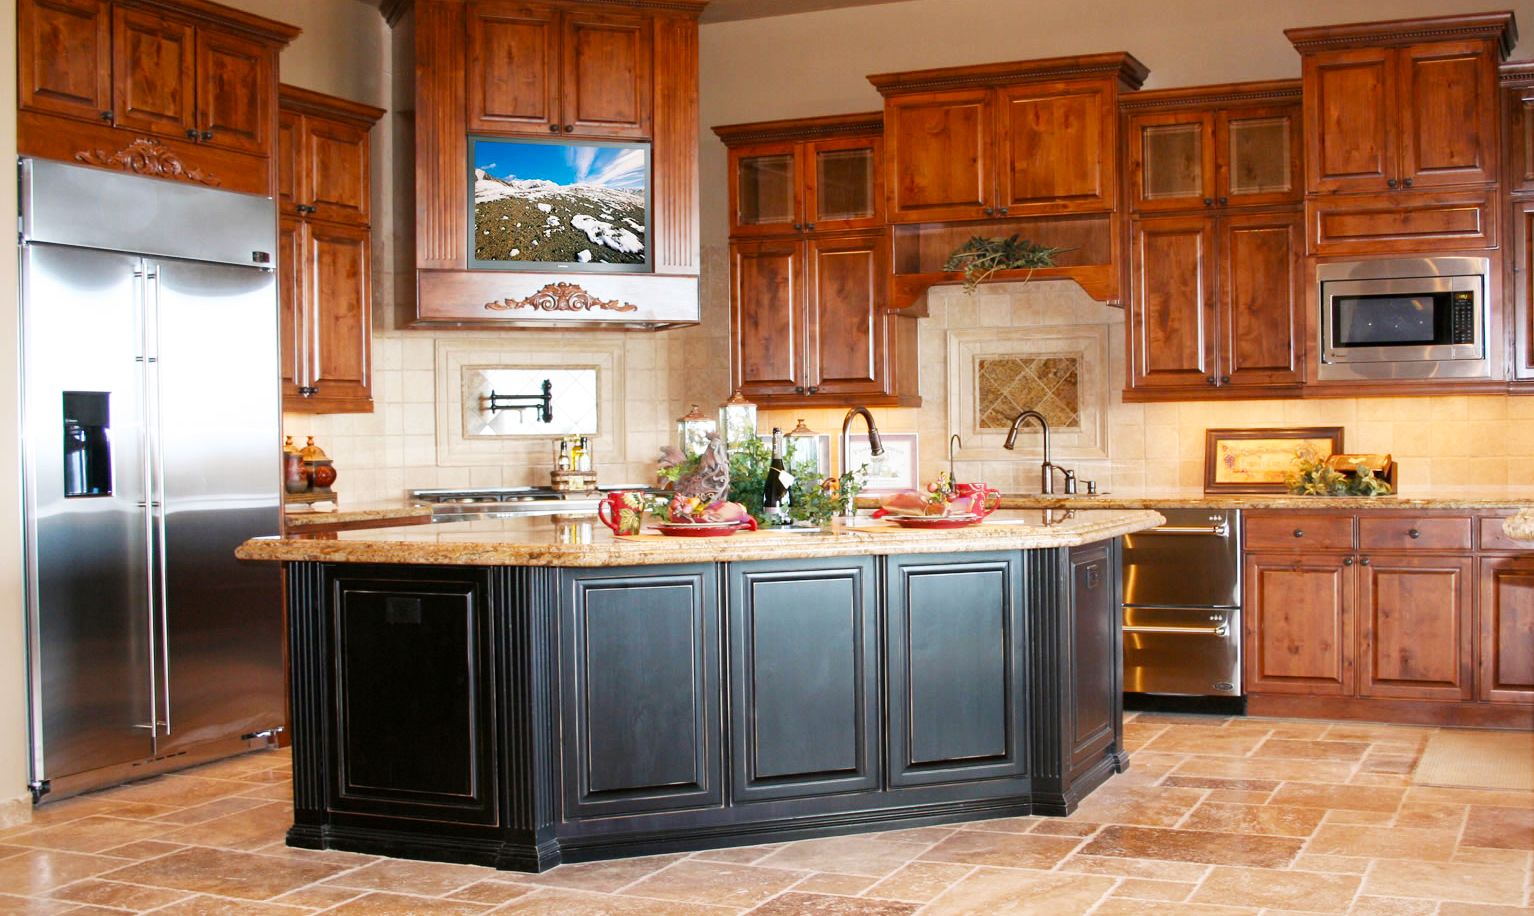 New Kitchen Cabinets Ideas For Custom Kitchen Cabinets Roy Home Design